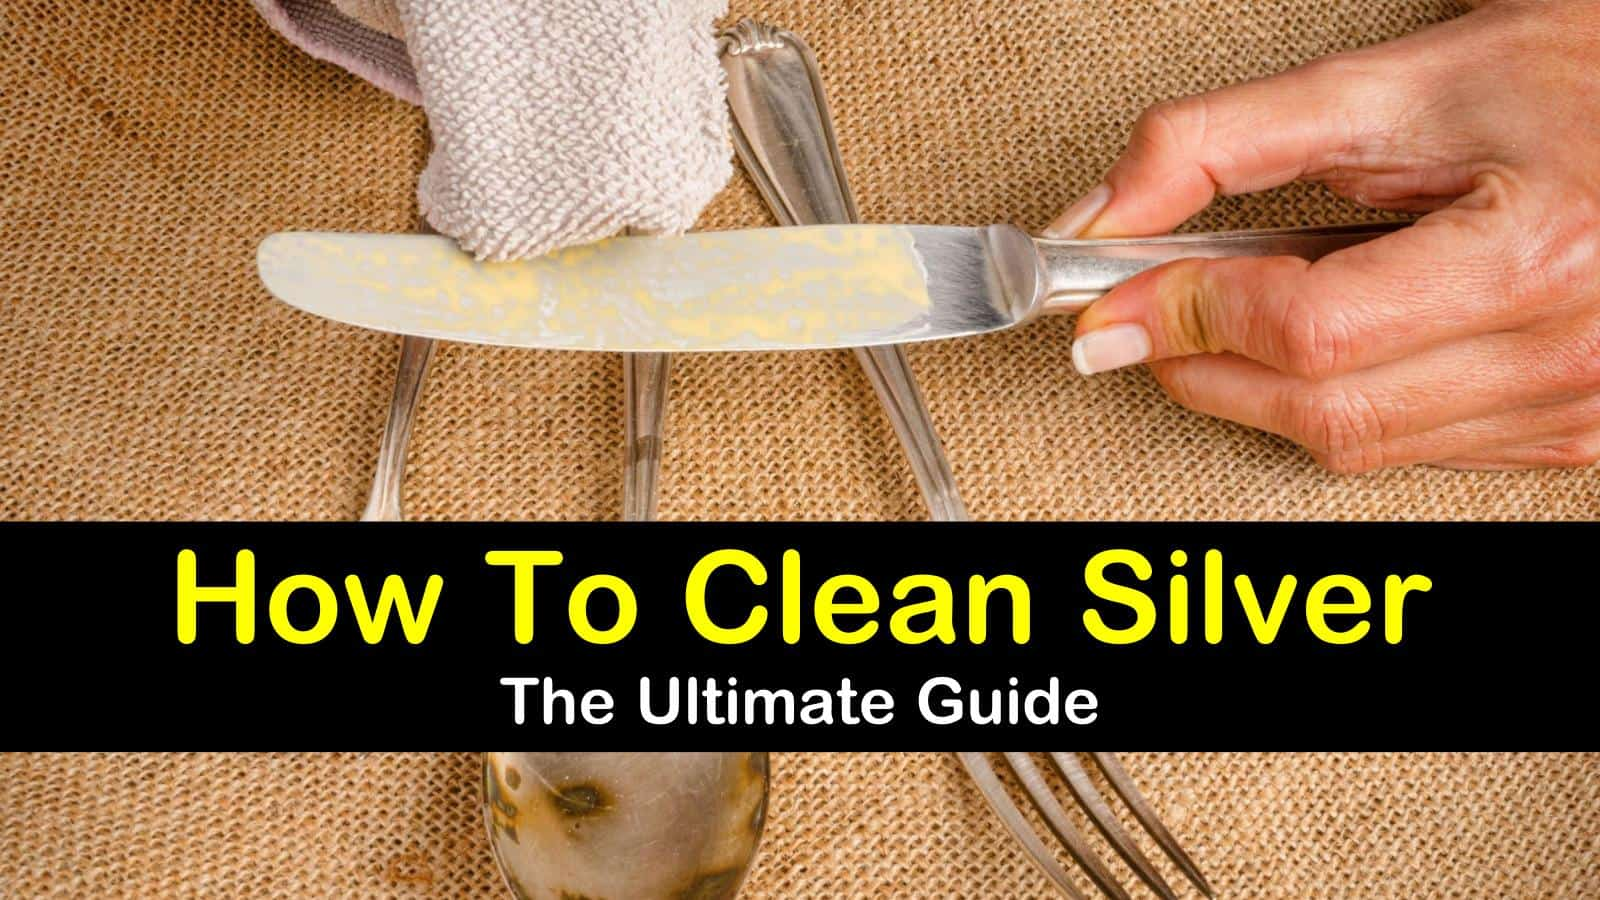 how to clean silver titleimg1